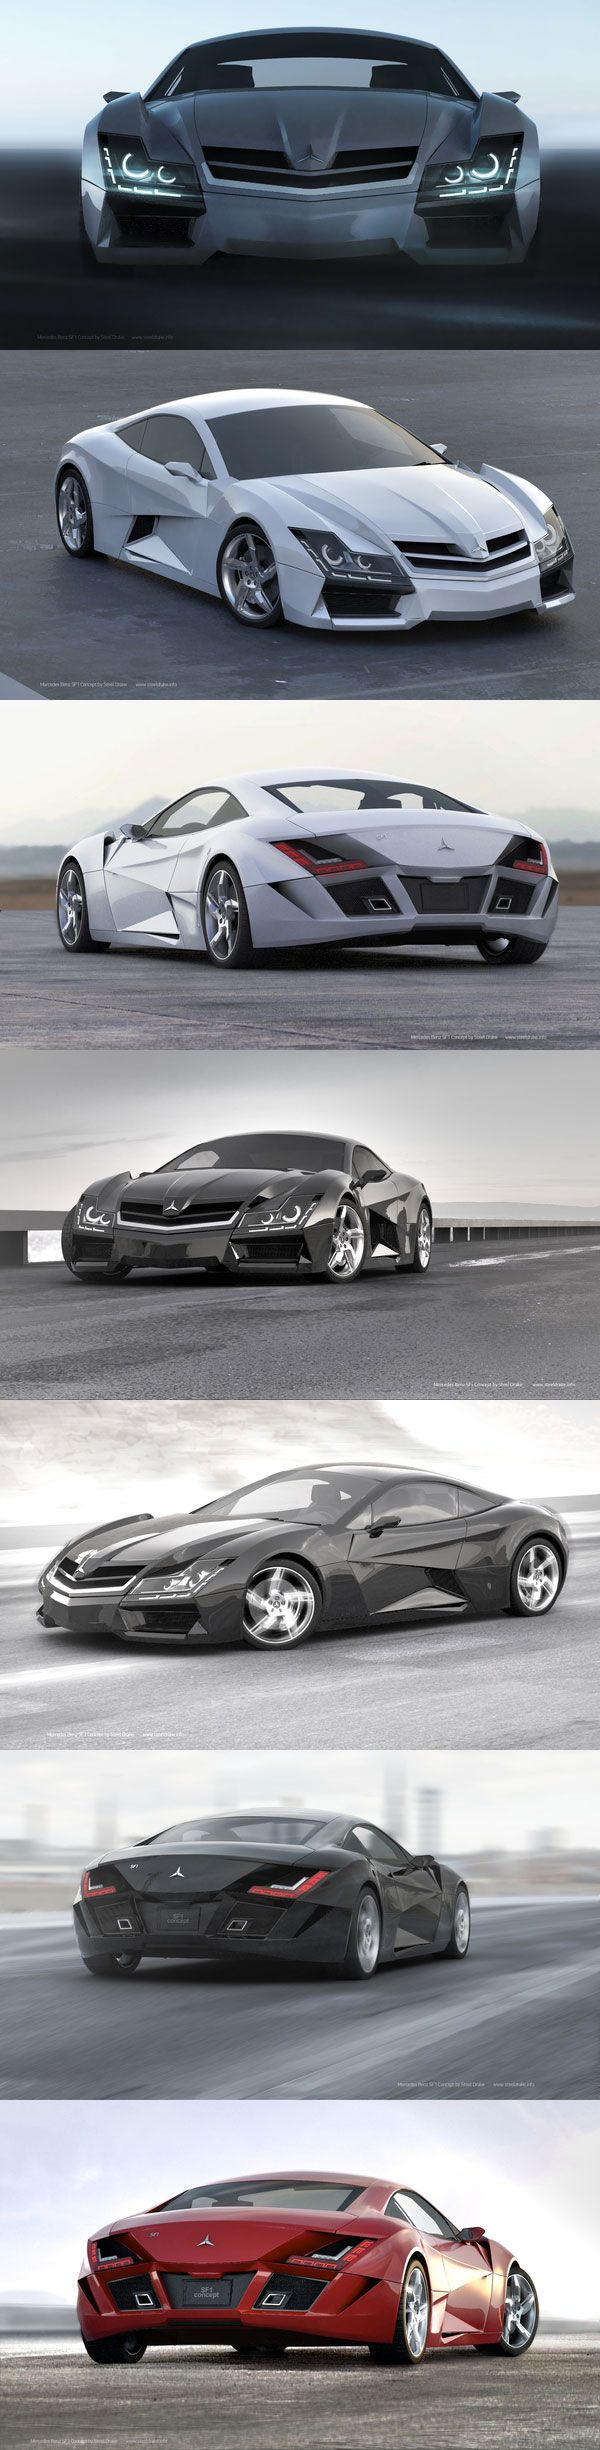 Sick Mercedes super car concept